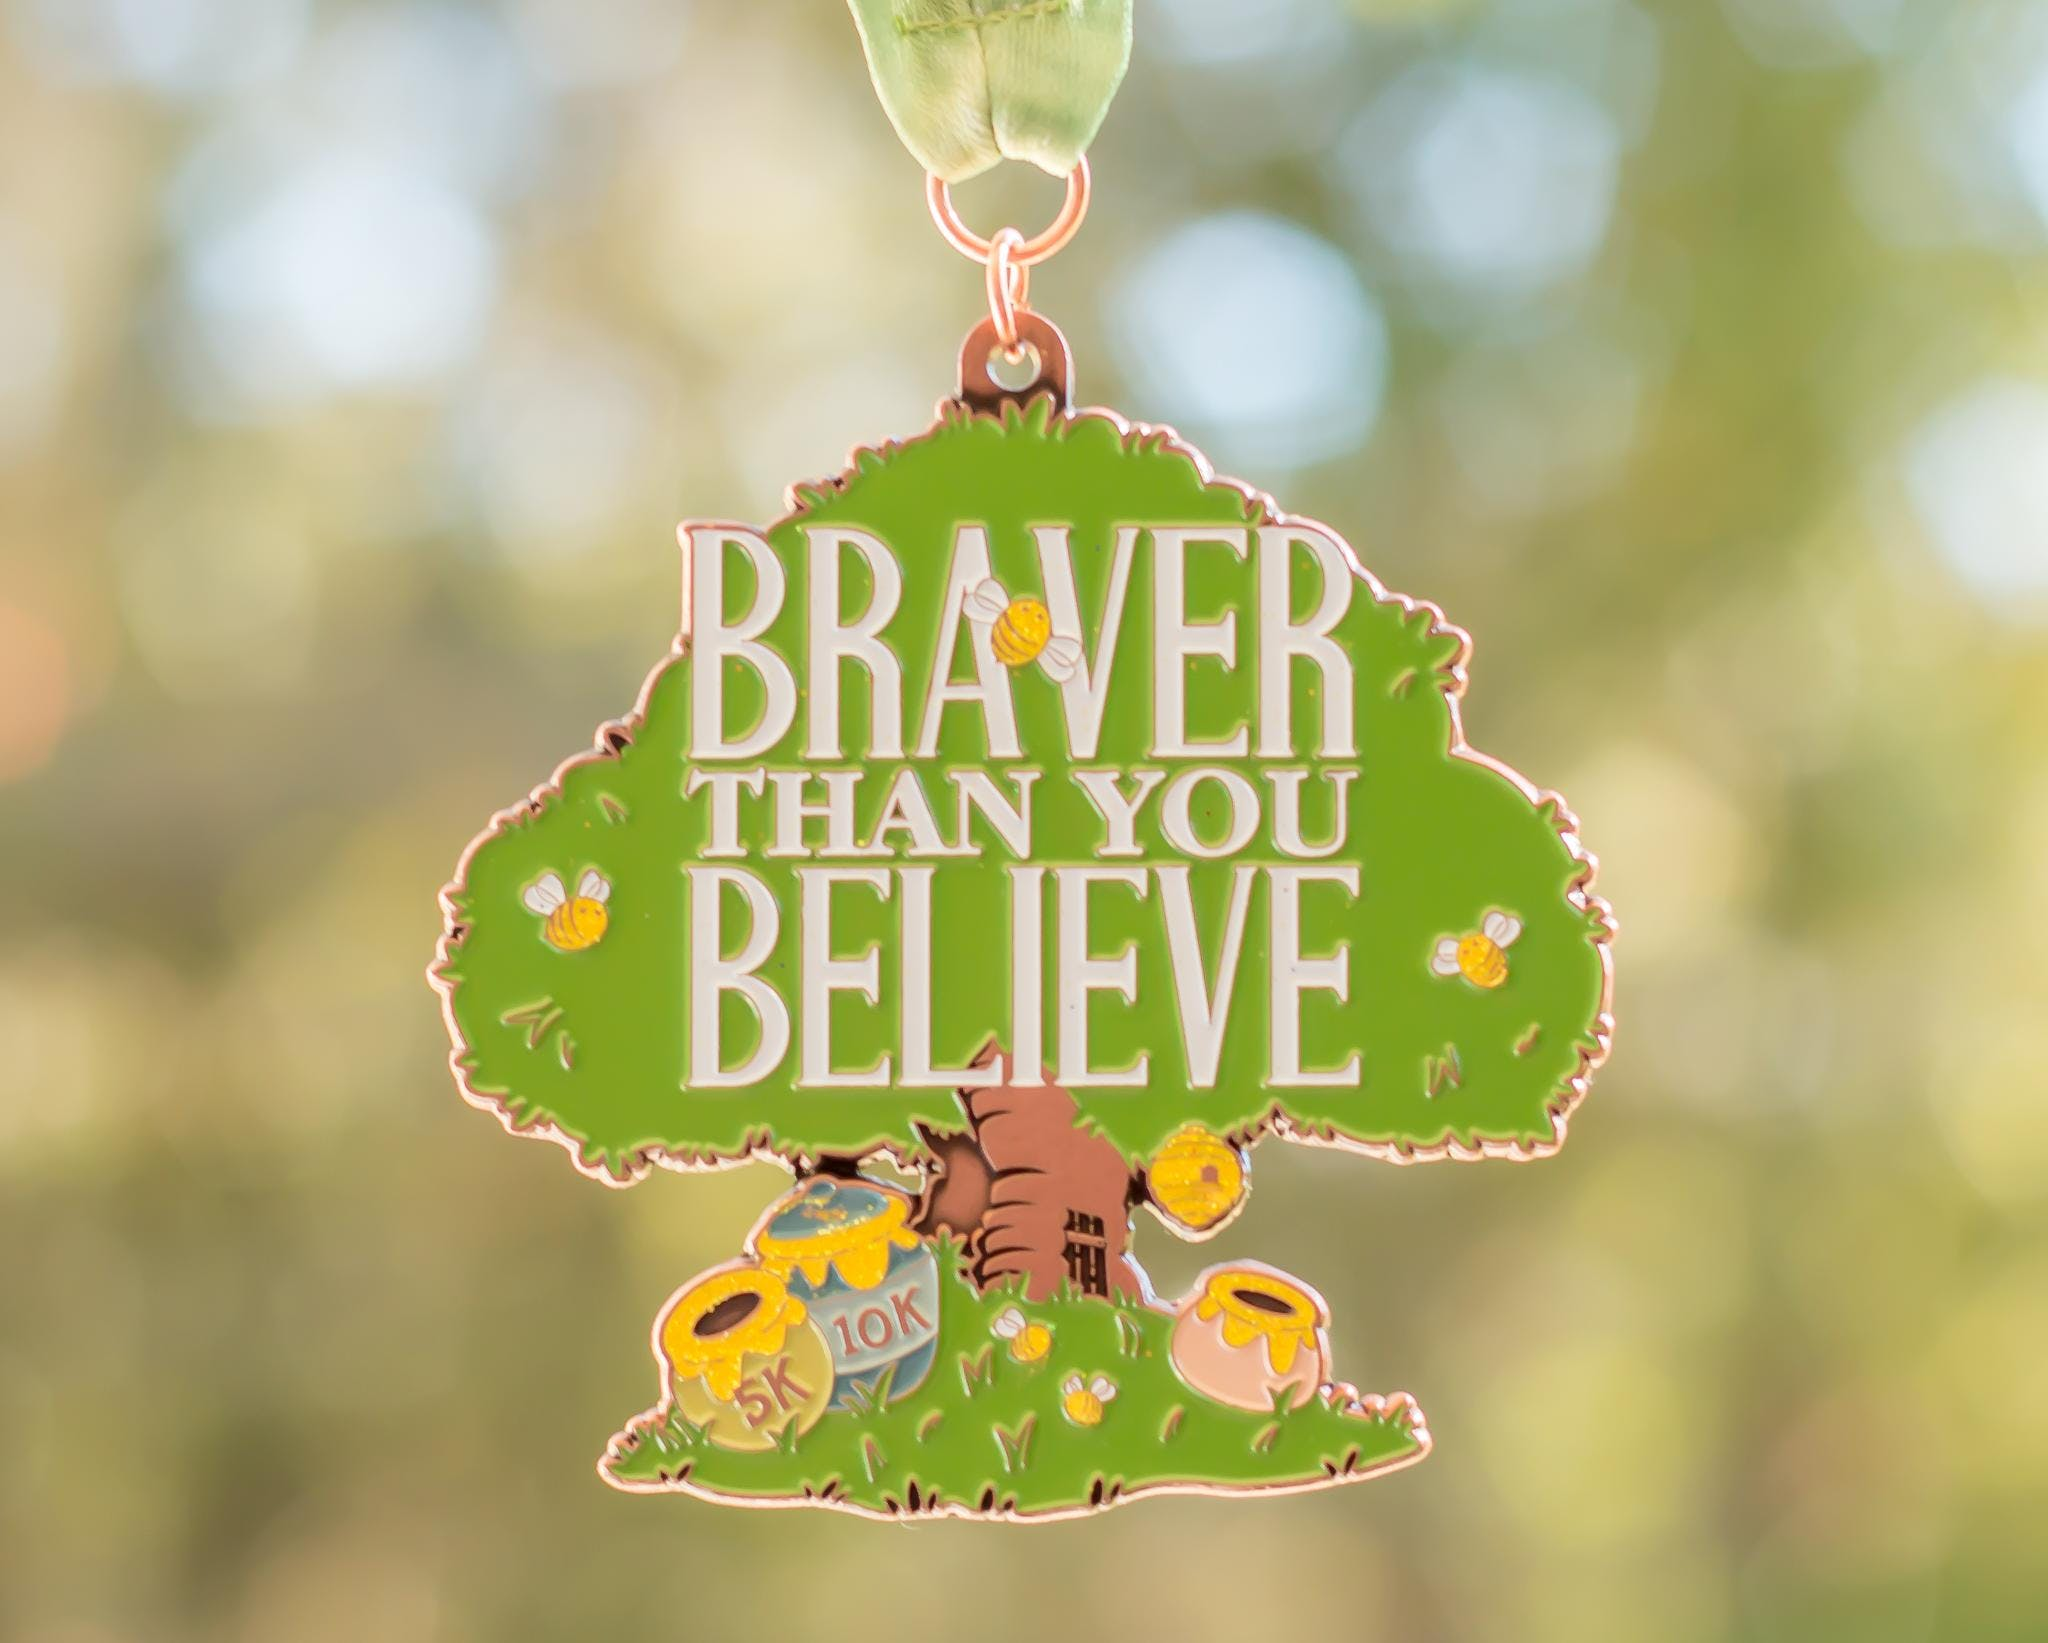 2019 Braver Than You Believe 5K & 10K in honor of National Winnie the Pooh Day - Phoenix